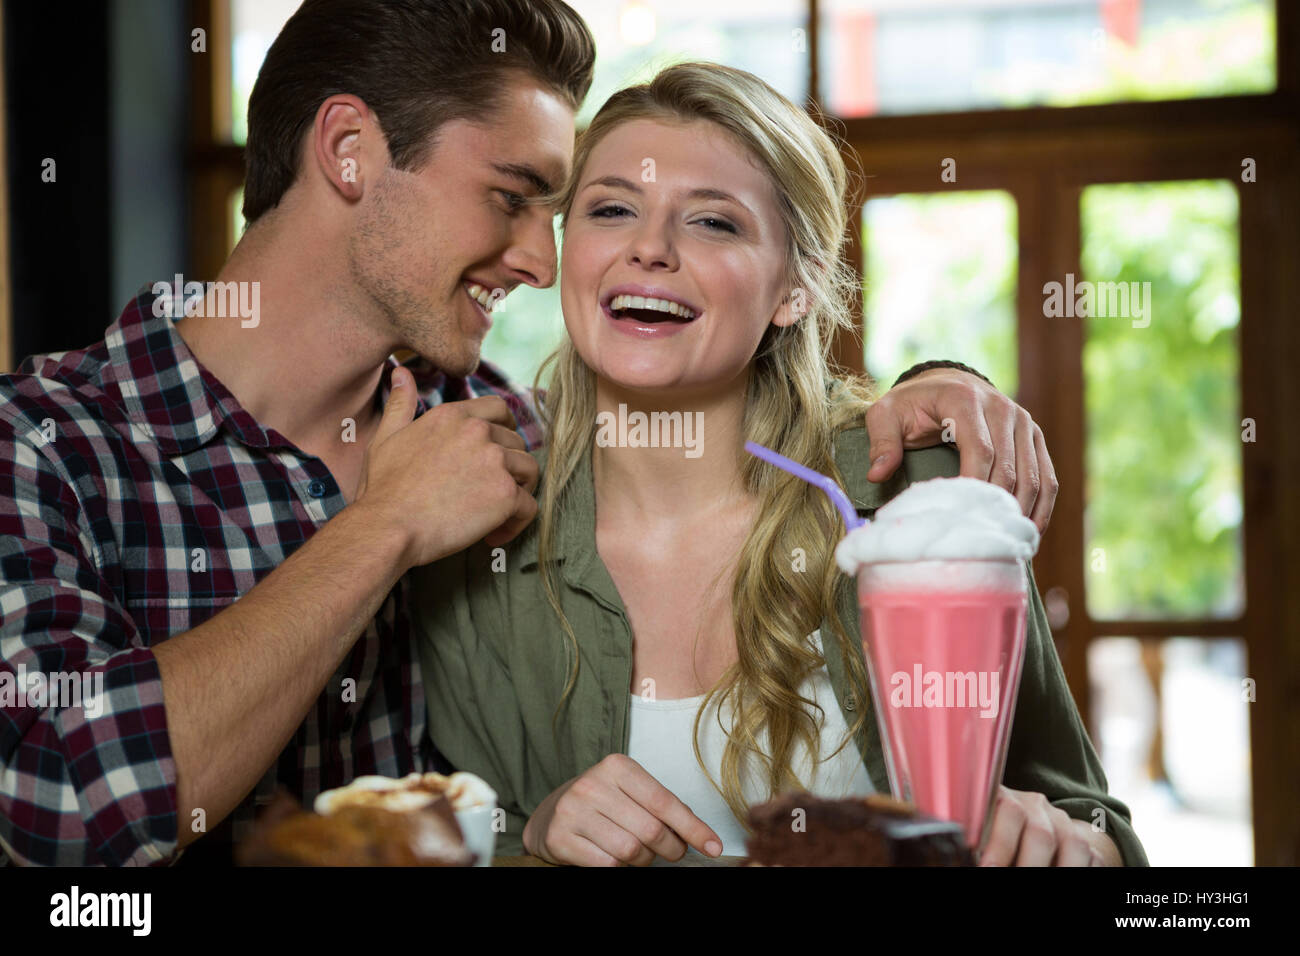 Romantic young couple spending quality time in coffee shop - Stock Image